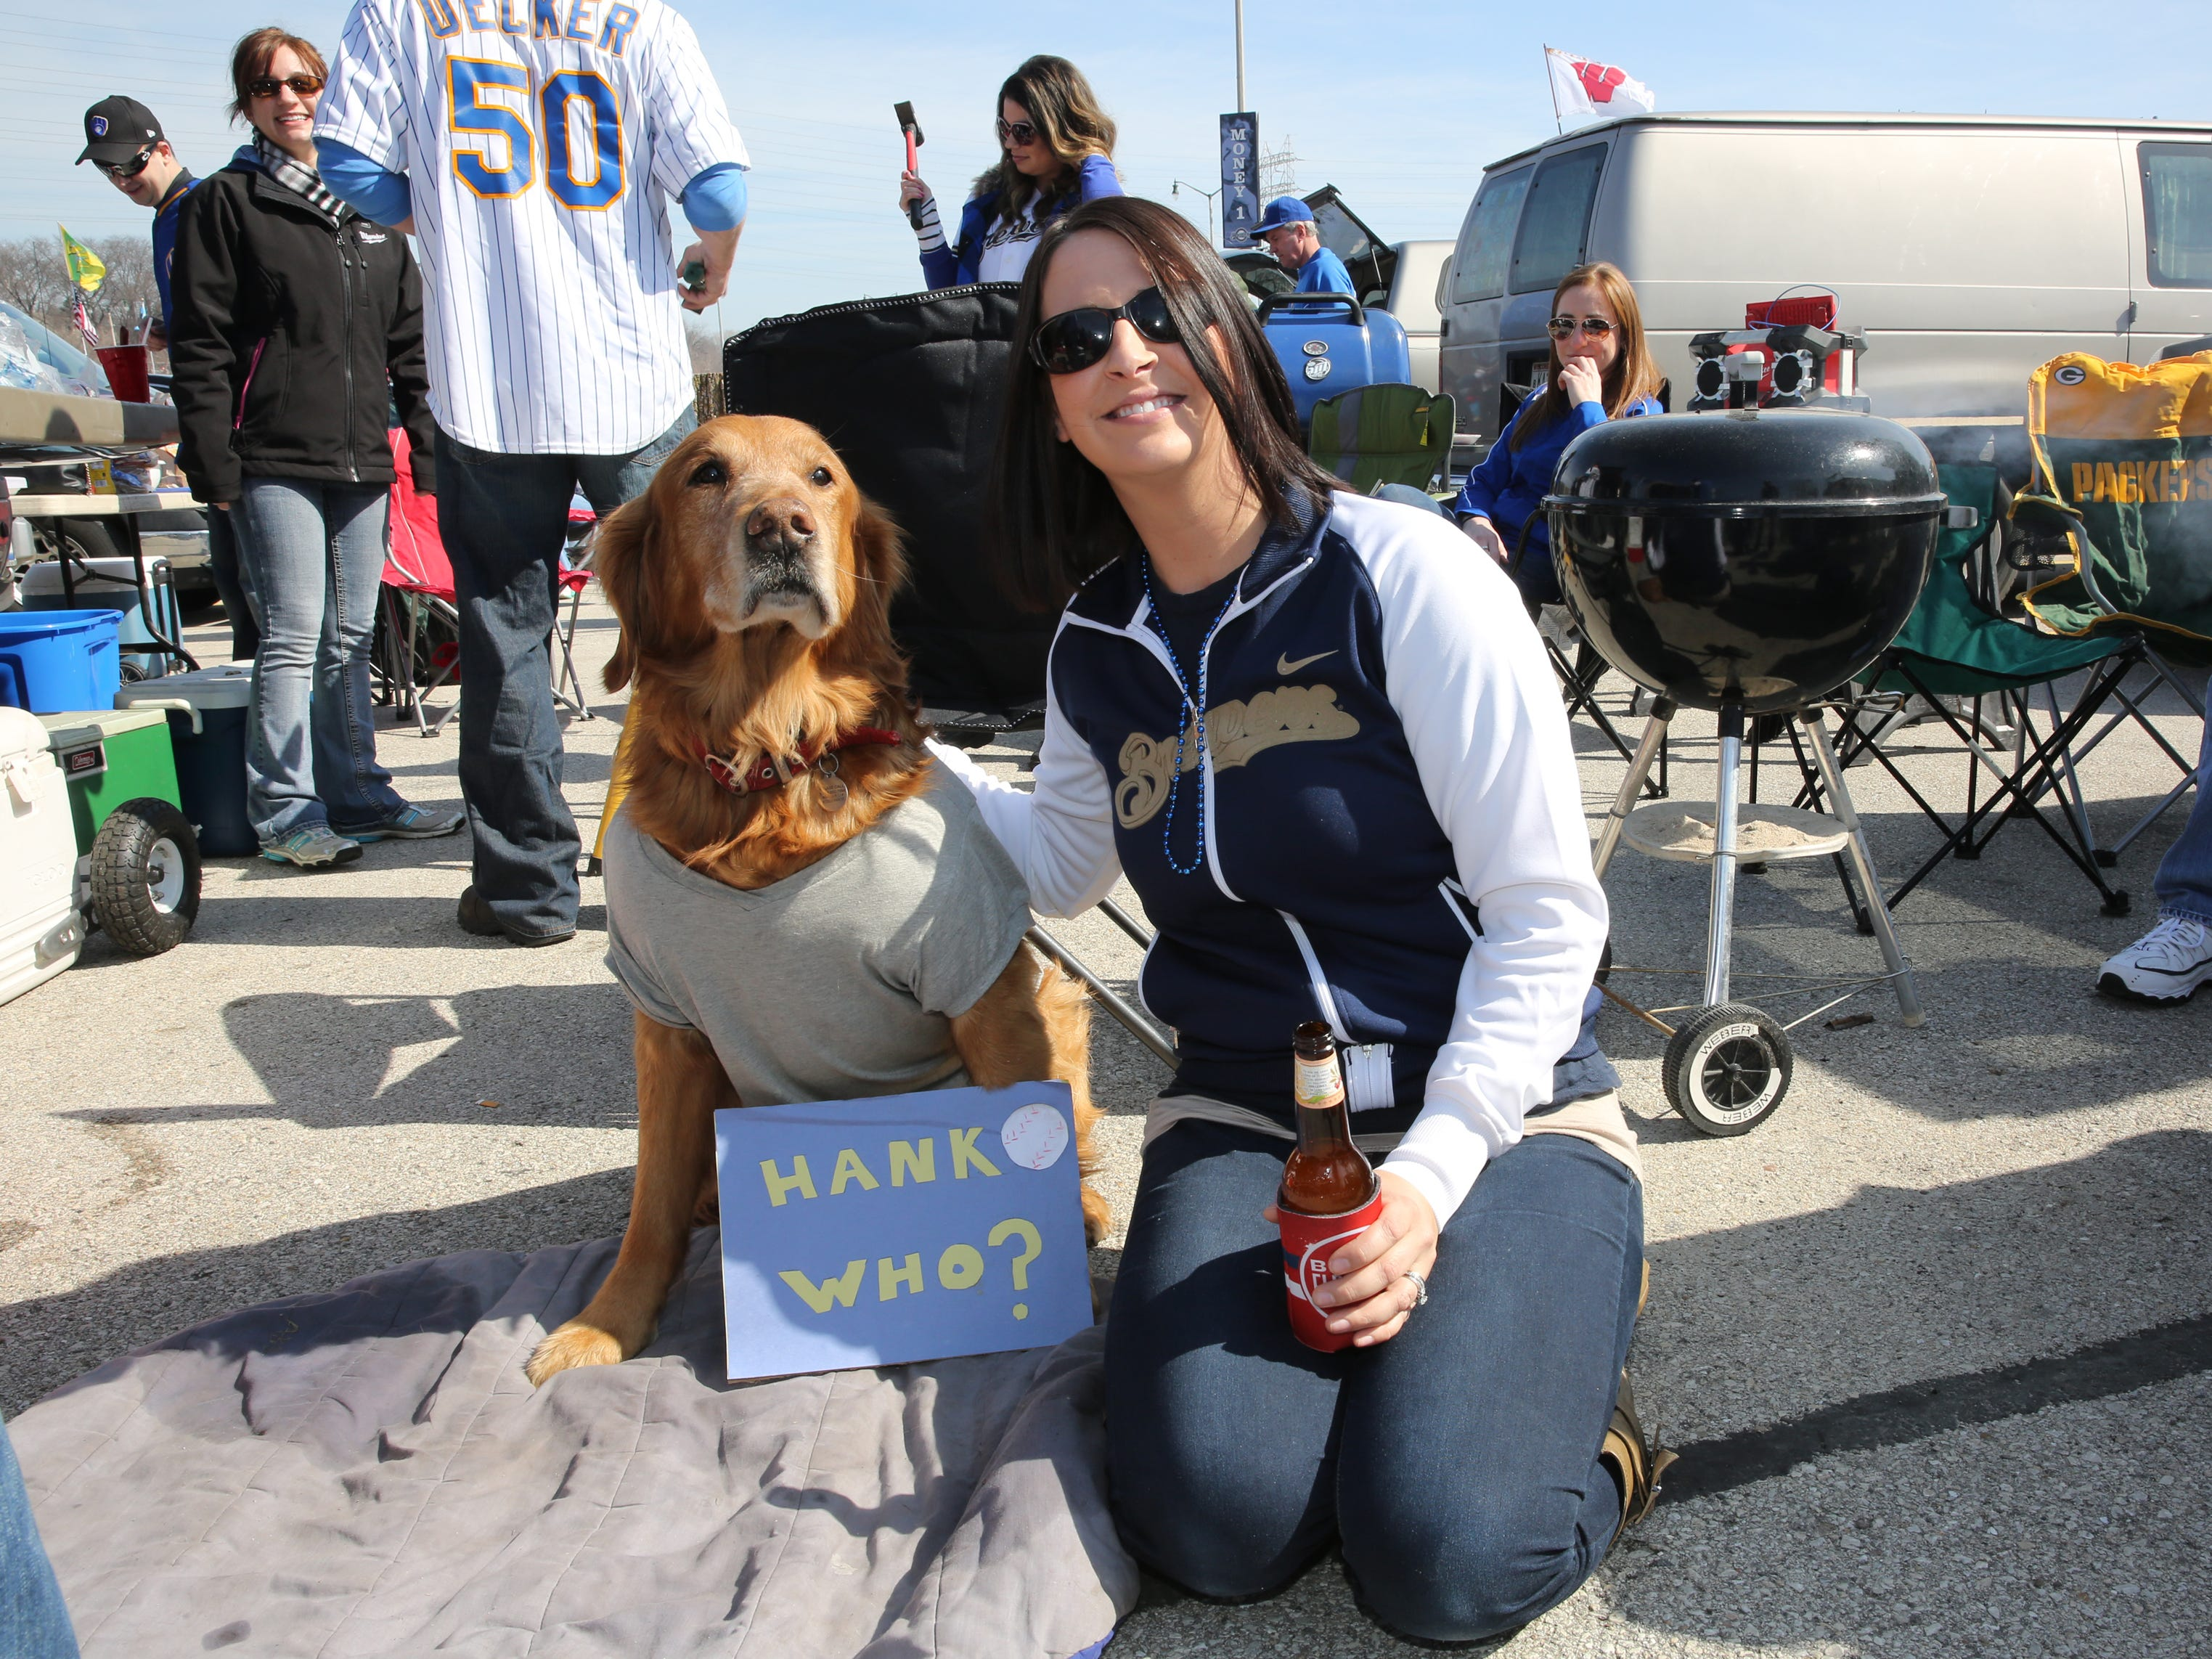 Katie Pfister of Menomonee Falls poses with Chance, a golden retriever owned by Josh Larson, of Milwaukee as they tailgate before the Milwaukee Brewers faced the Colorado Rockies for the home opener at Miller Park on April 6, 2015. The Rockies won, 10-0.